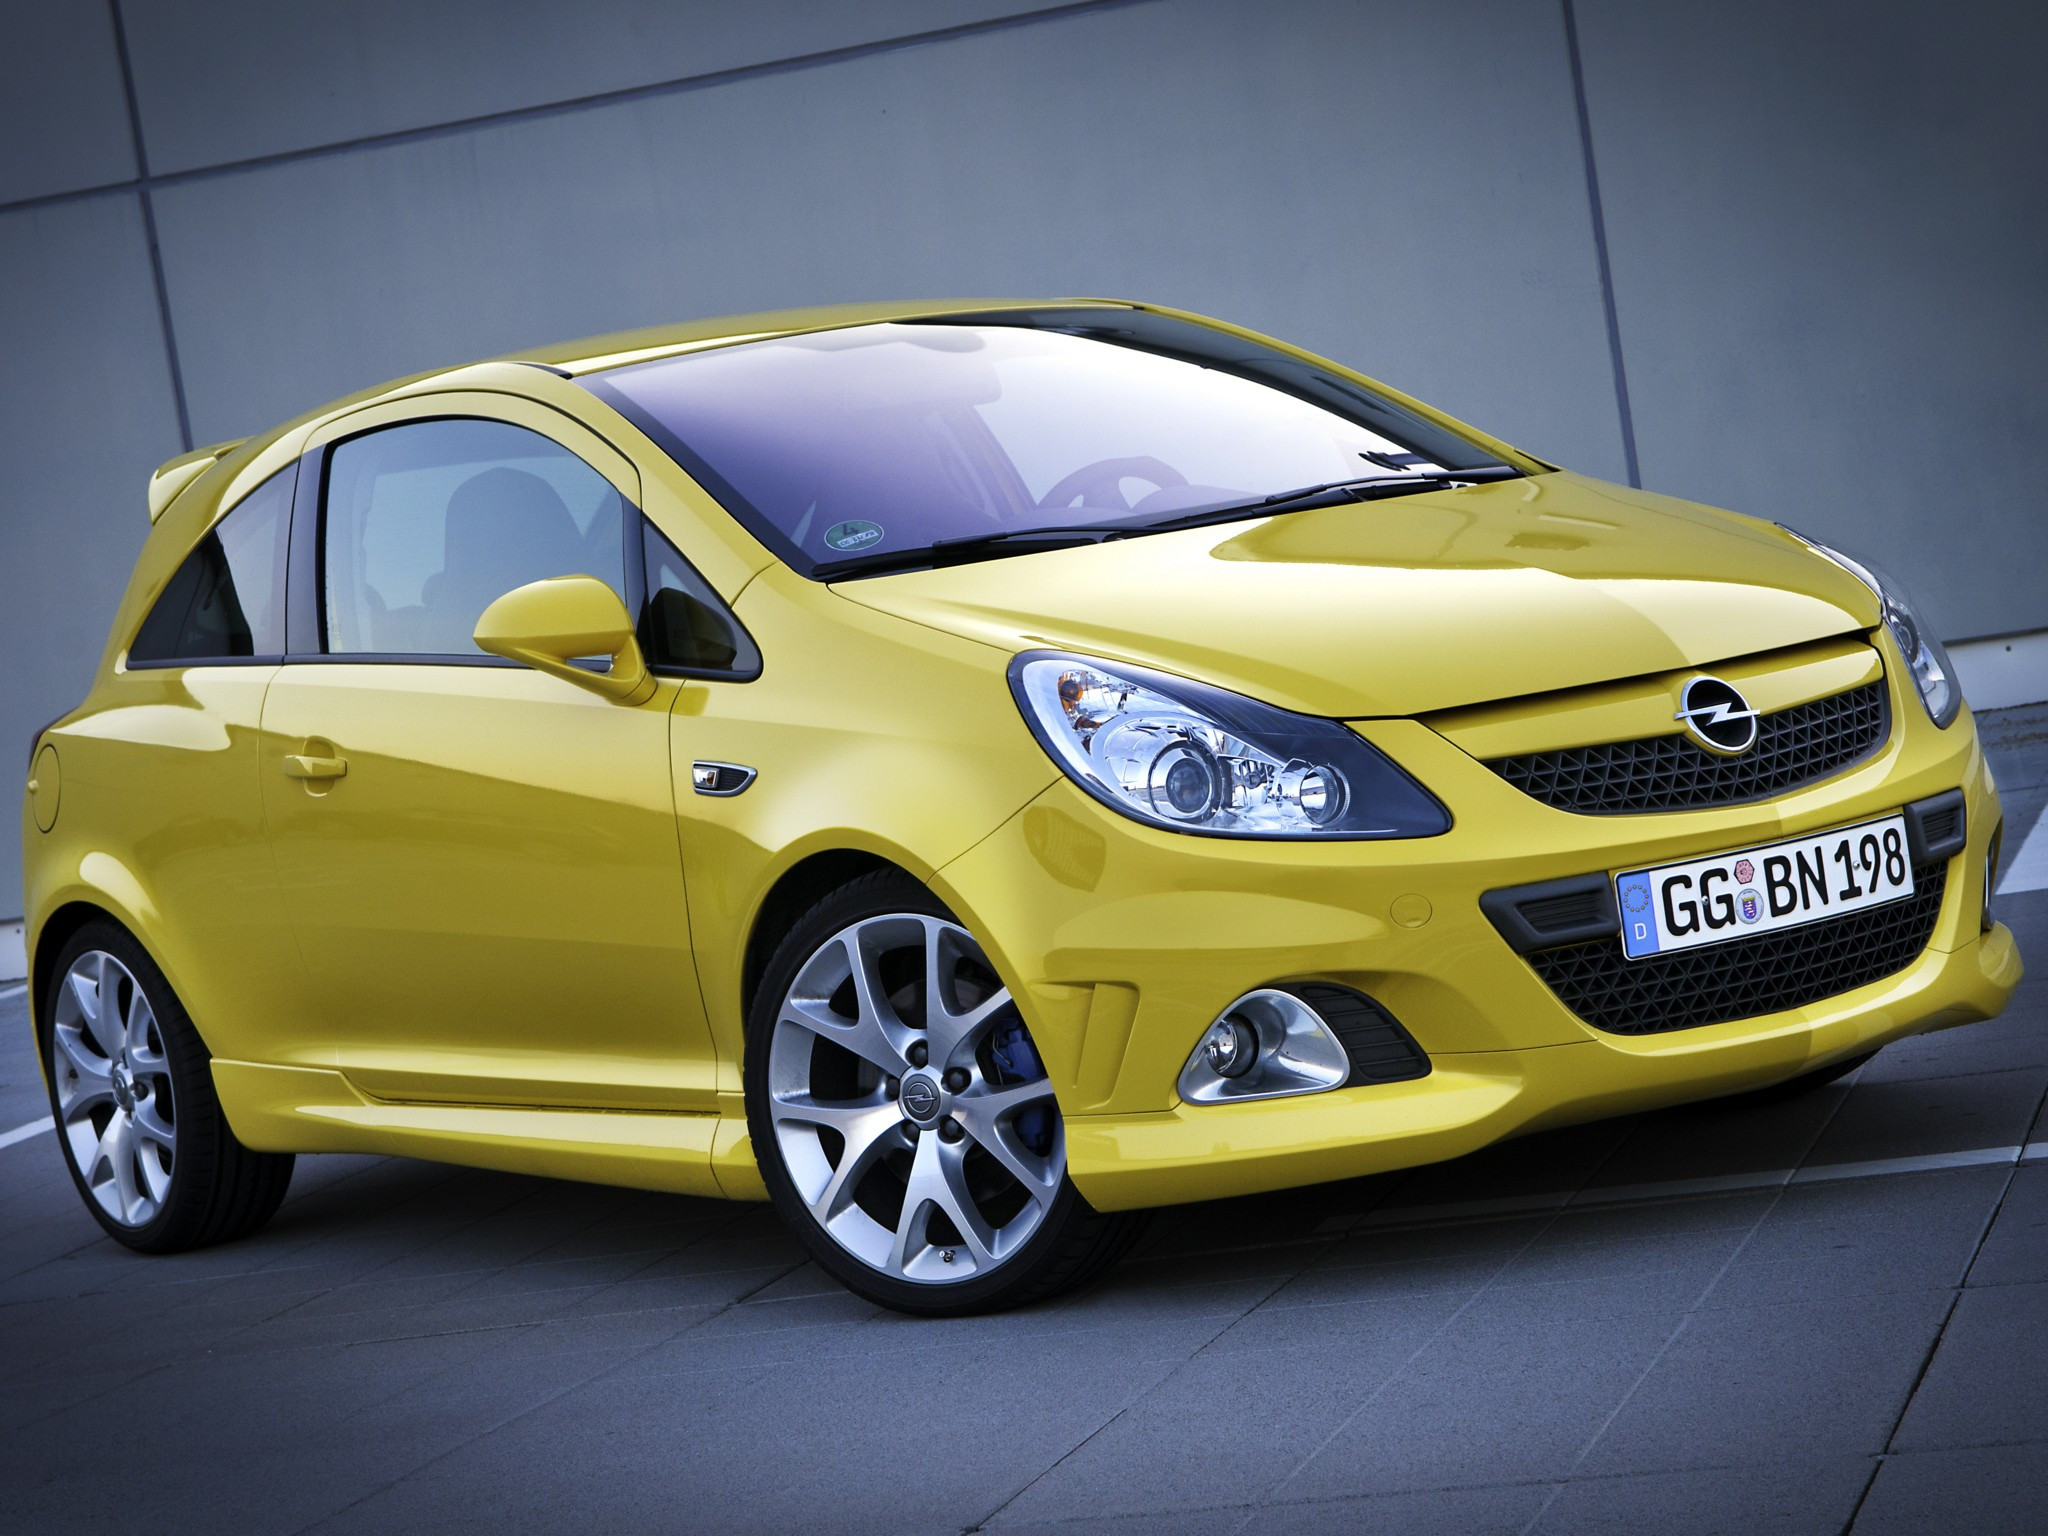 Isfvjiim additionally Opelantara furthermore B Iwrxfx additionally Opel Corsa Opc together with Opel Vectra Main. on opel 2 liter engine sales